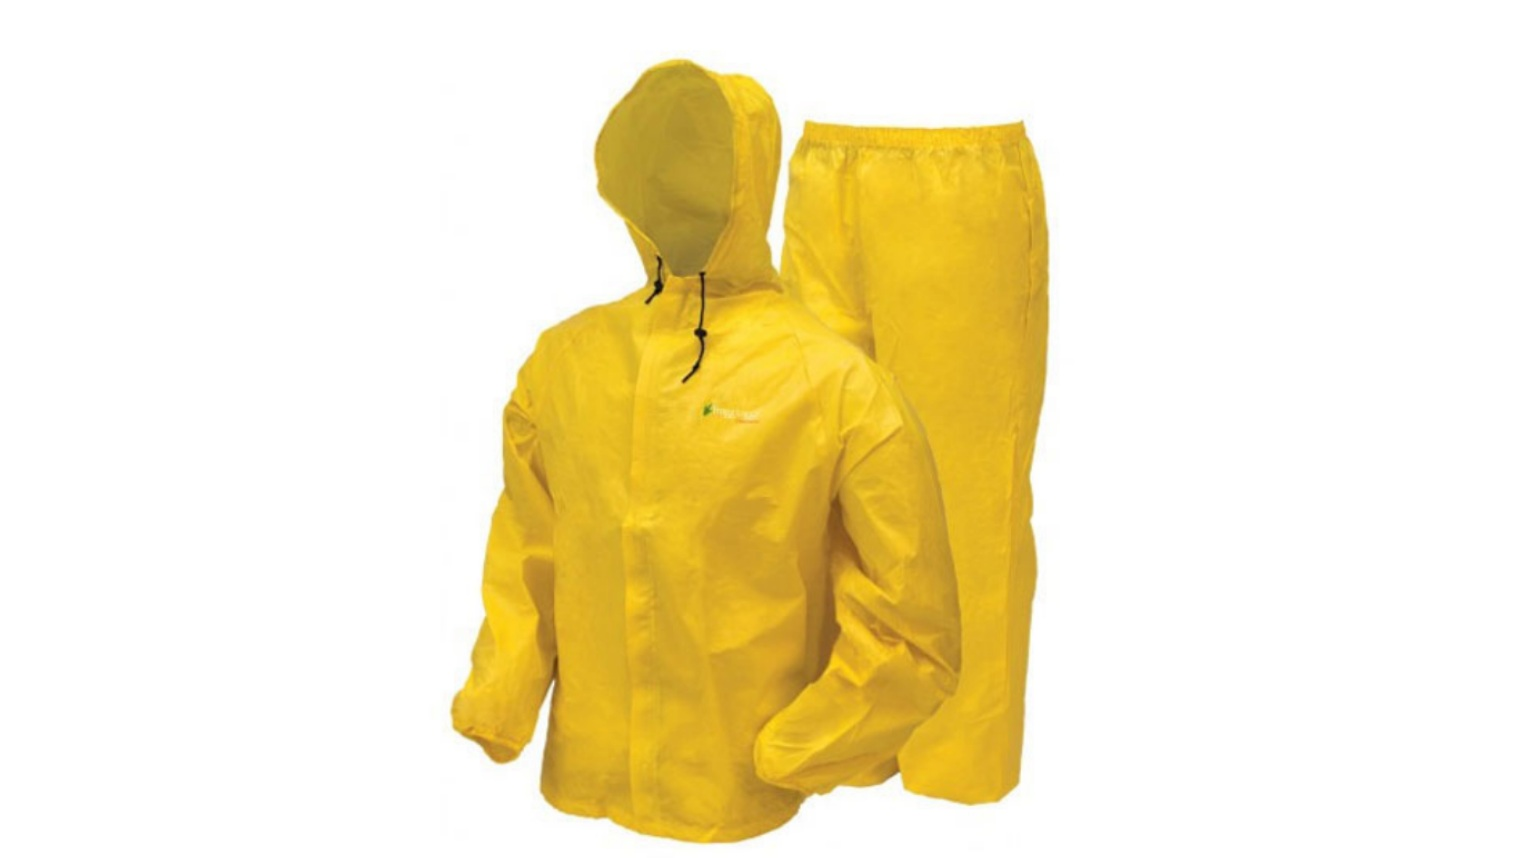 Safety & Protective - Frogg Toggs Rain GearBoots & GlovesHearing & Eye ProtectionHard HatsHi-Visibility